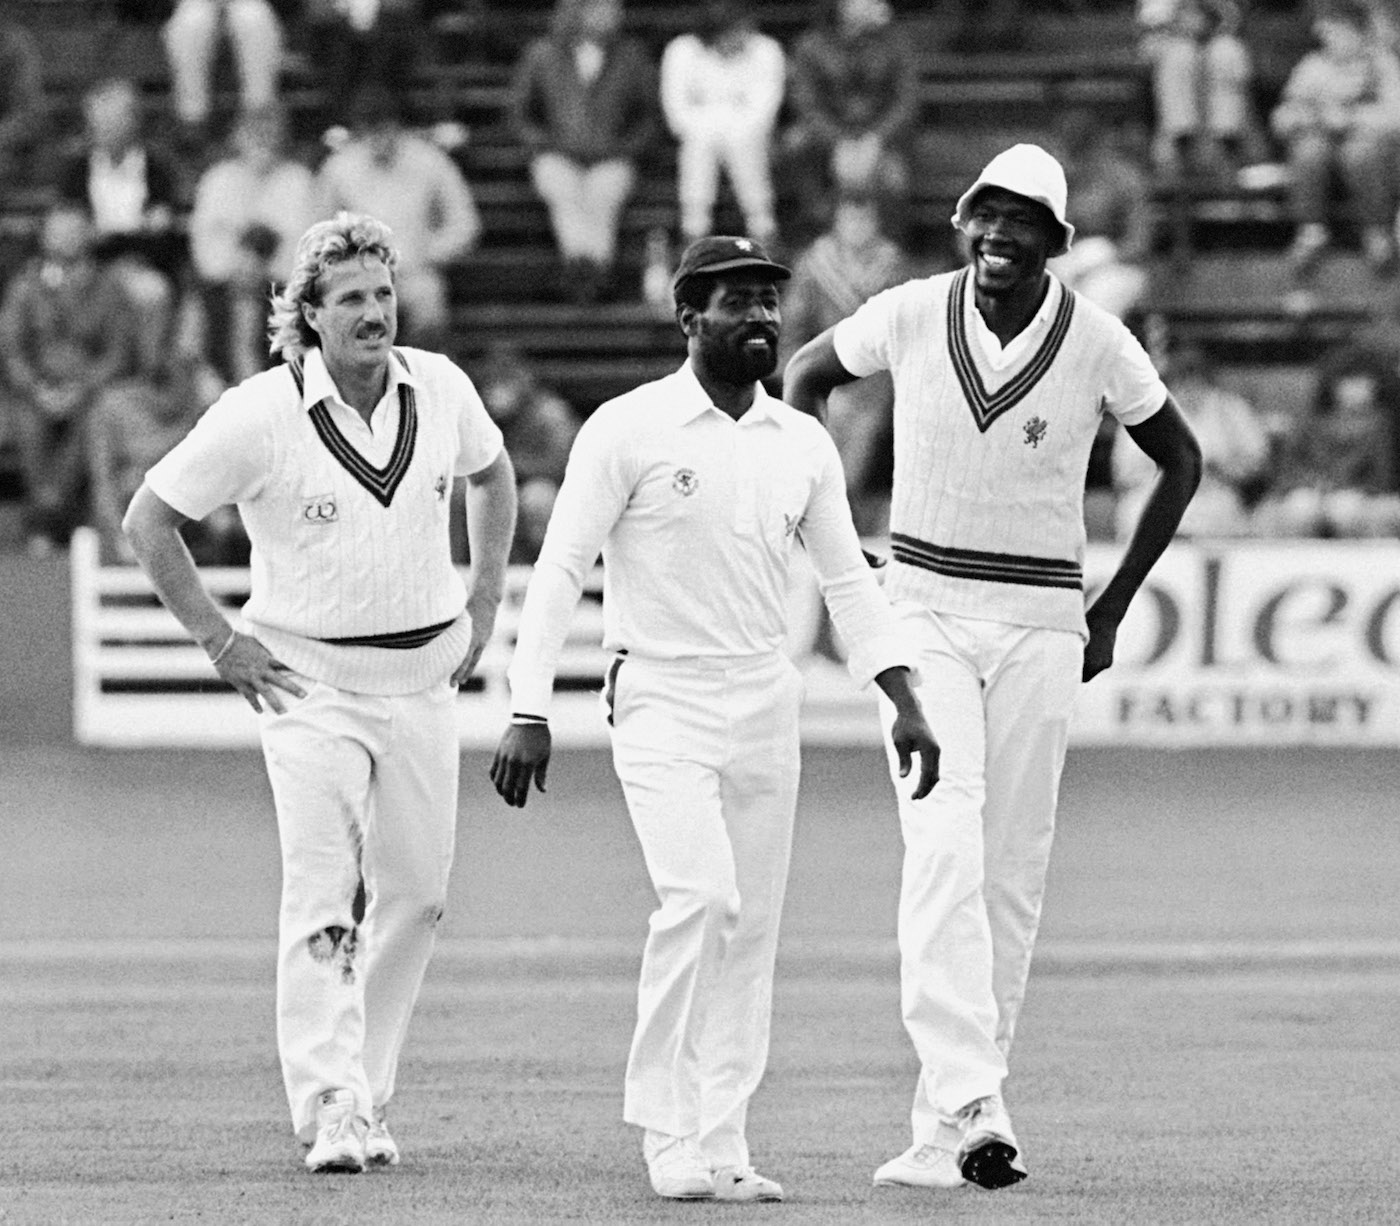 With the other famous Somerset stalwarts Joel Garner and Ian Botham in 1986